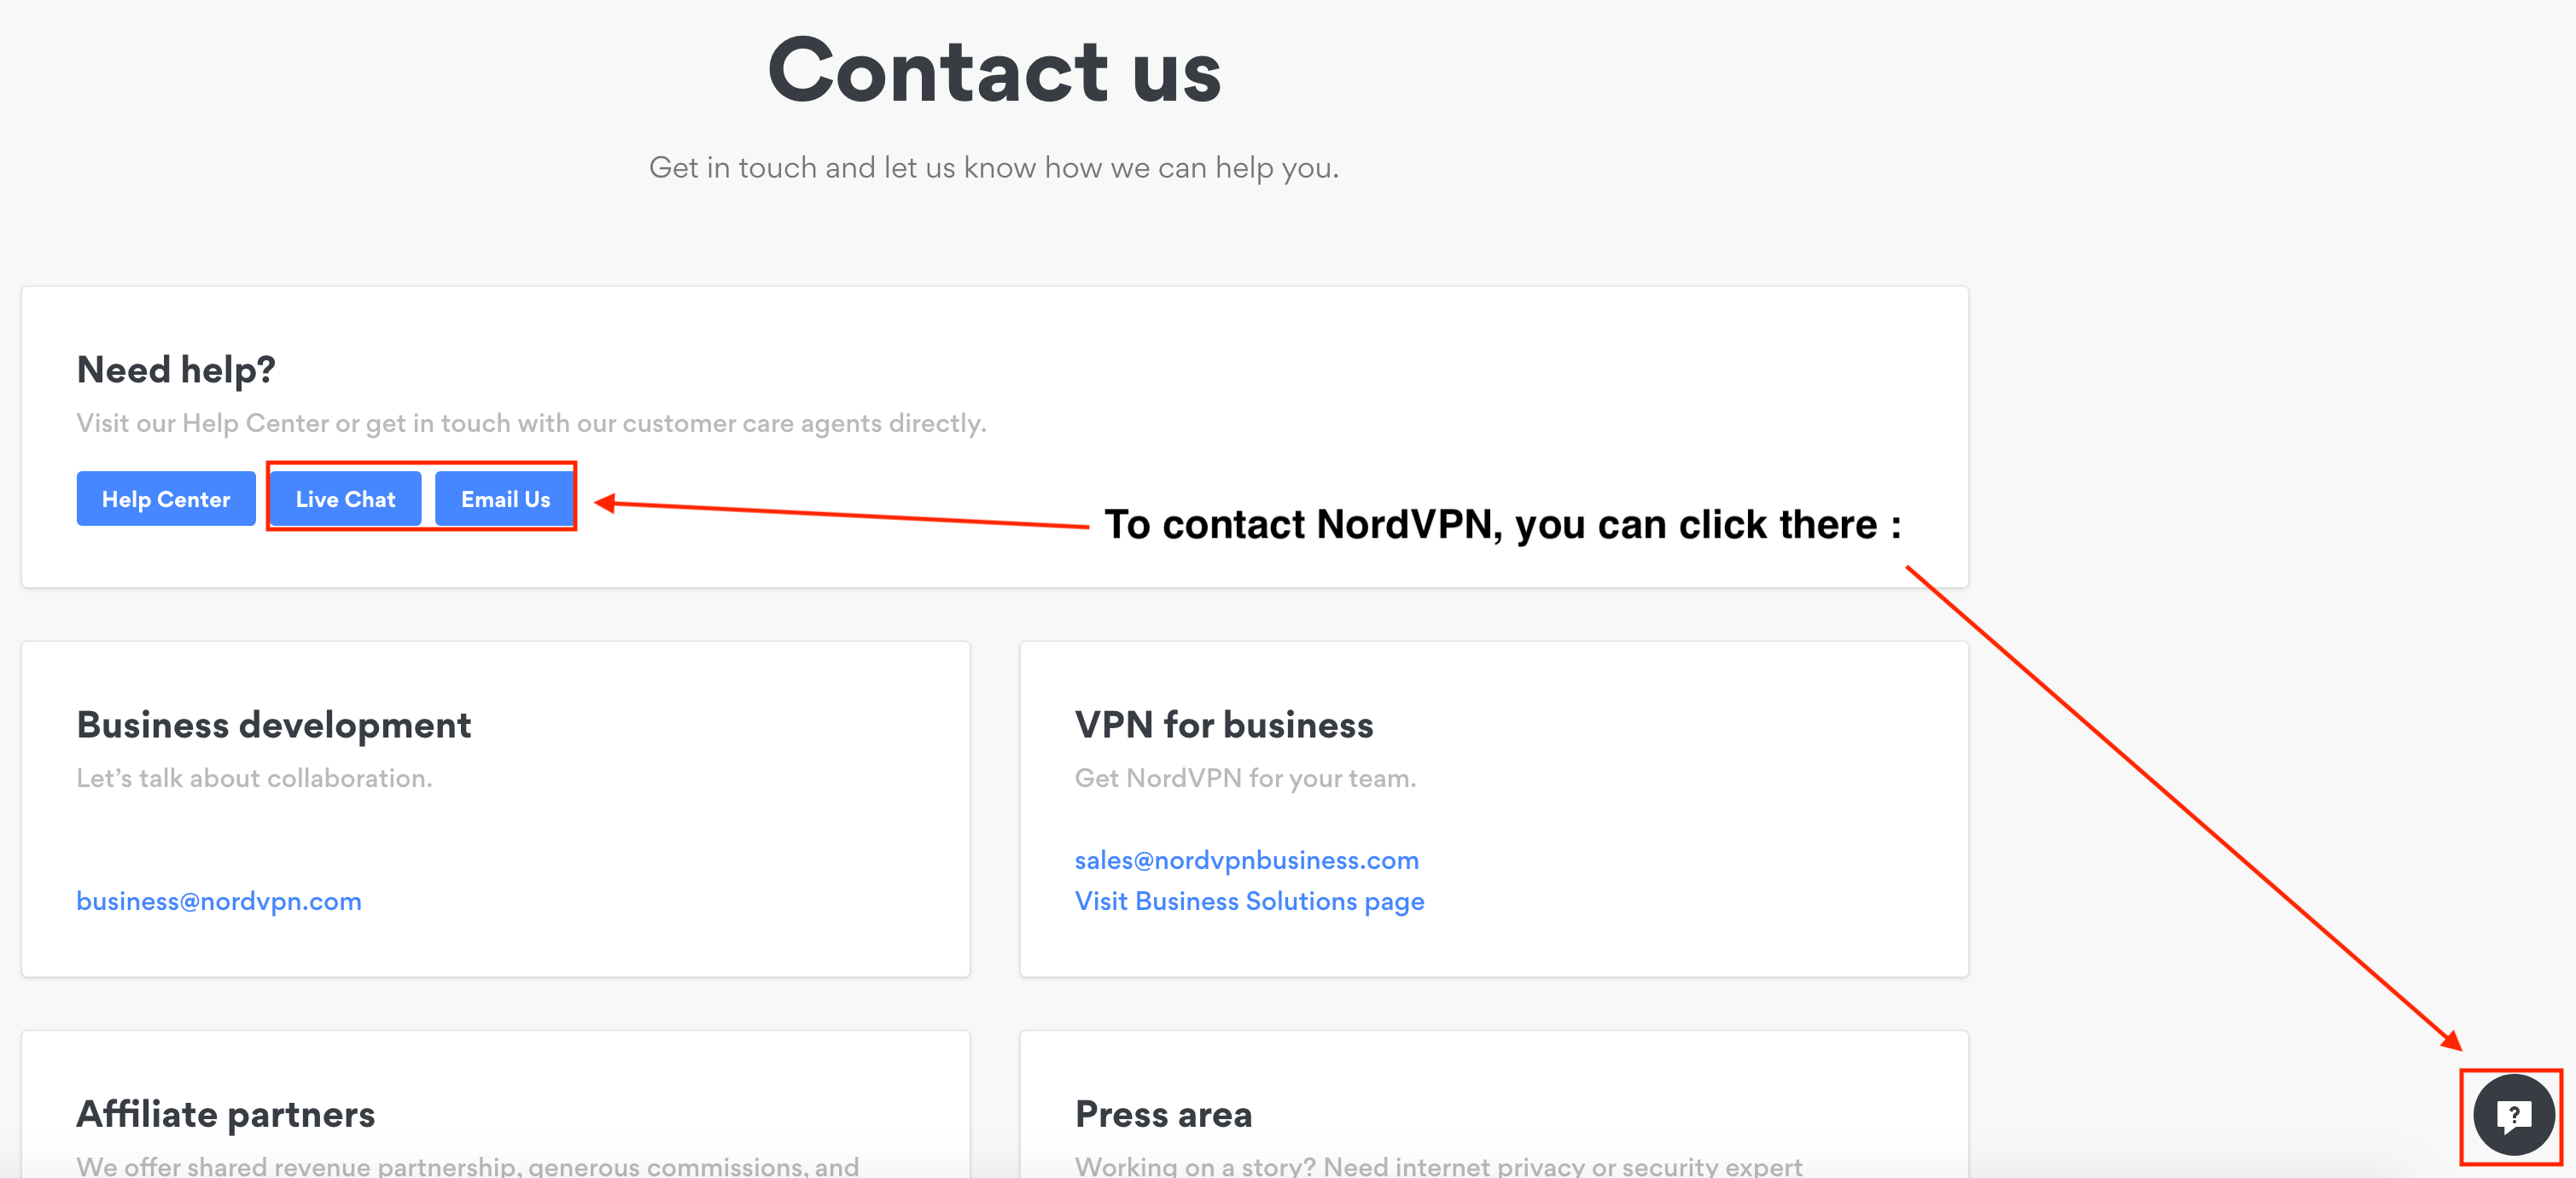 Contact NordVPN for refund